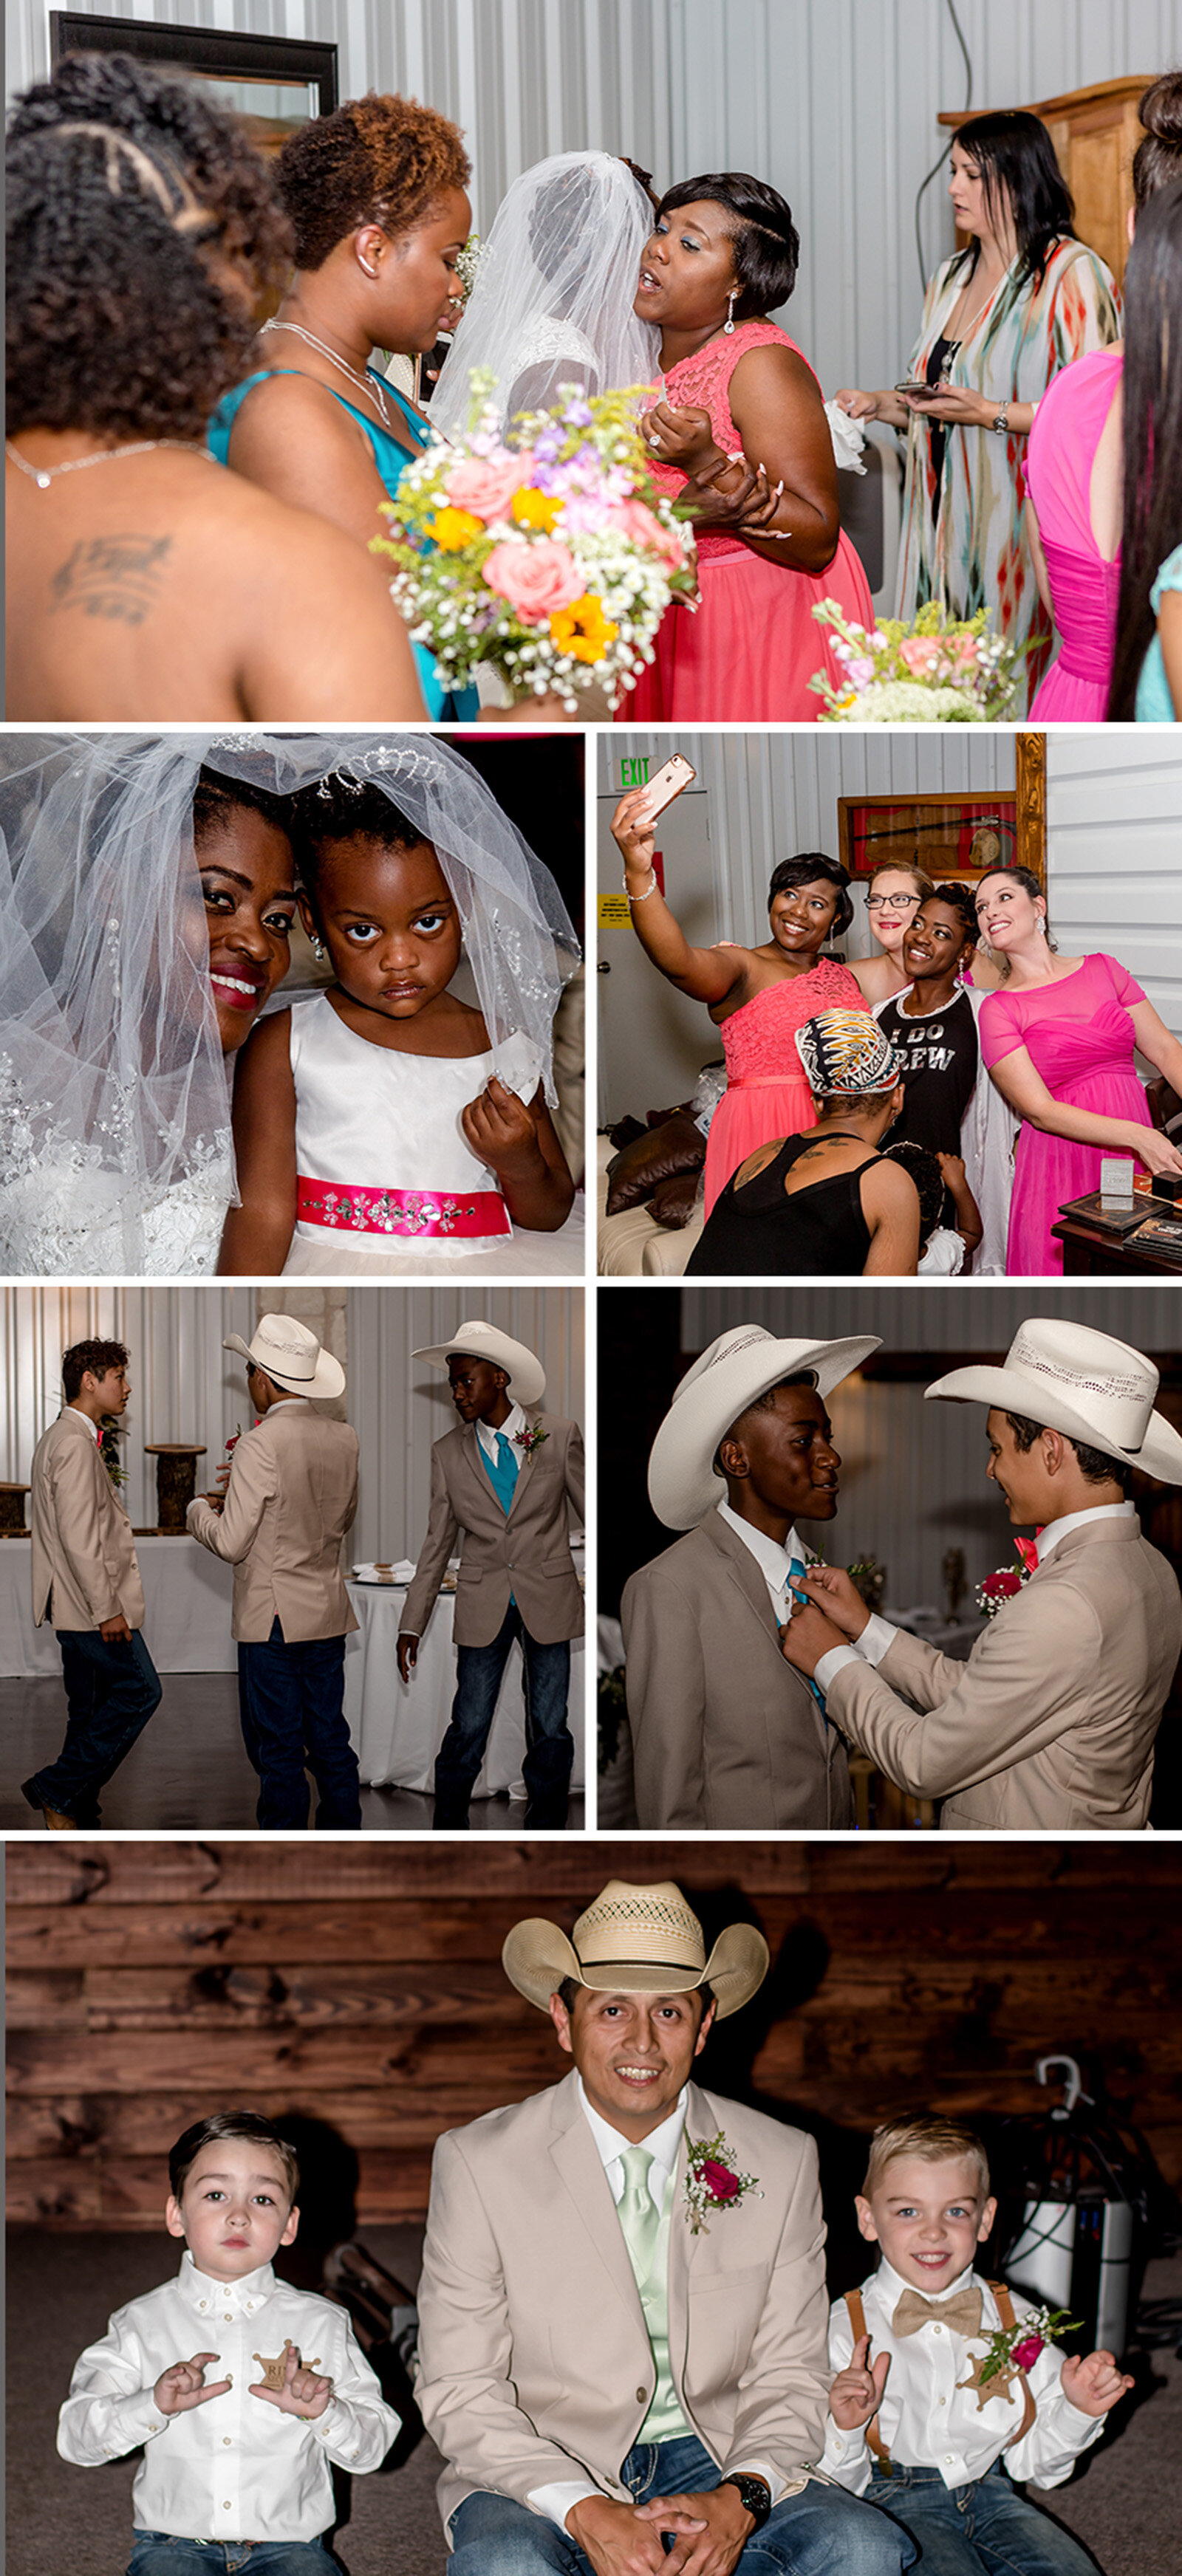 A look at the bride and groom (and their children) getting ready for their big day!